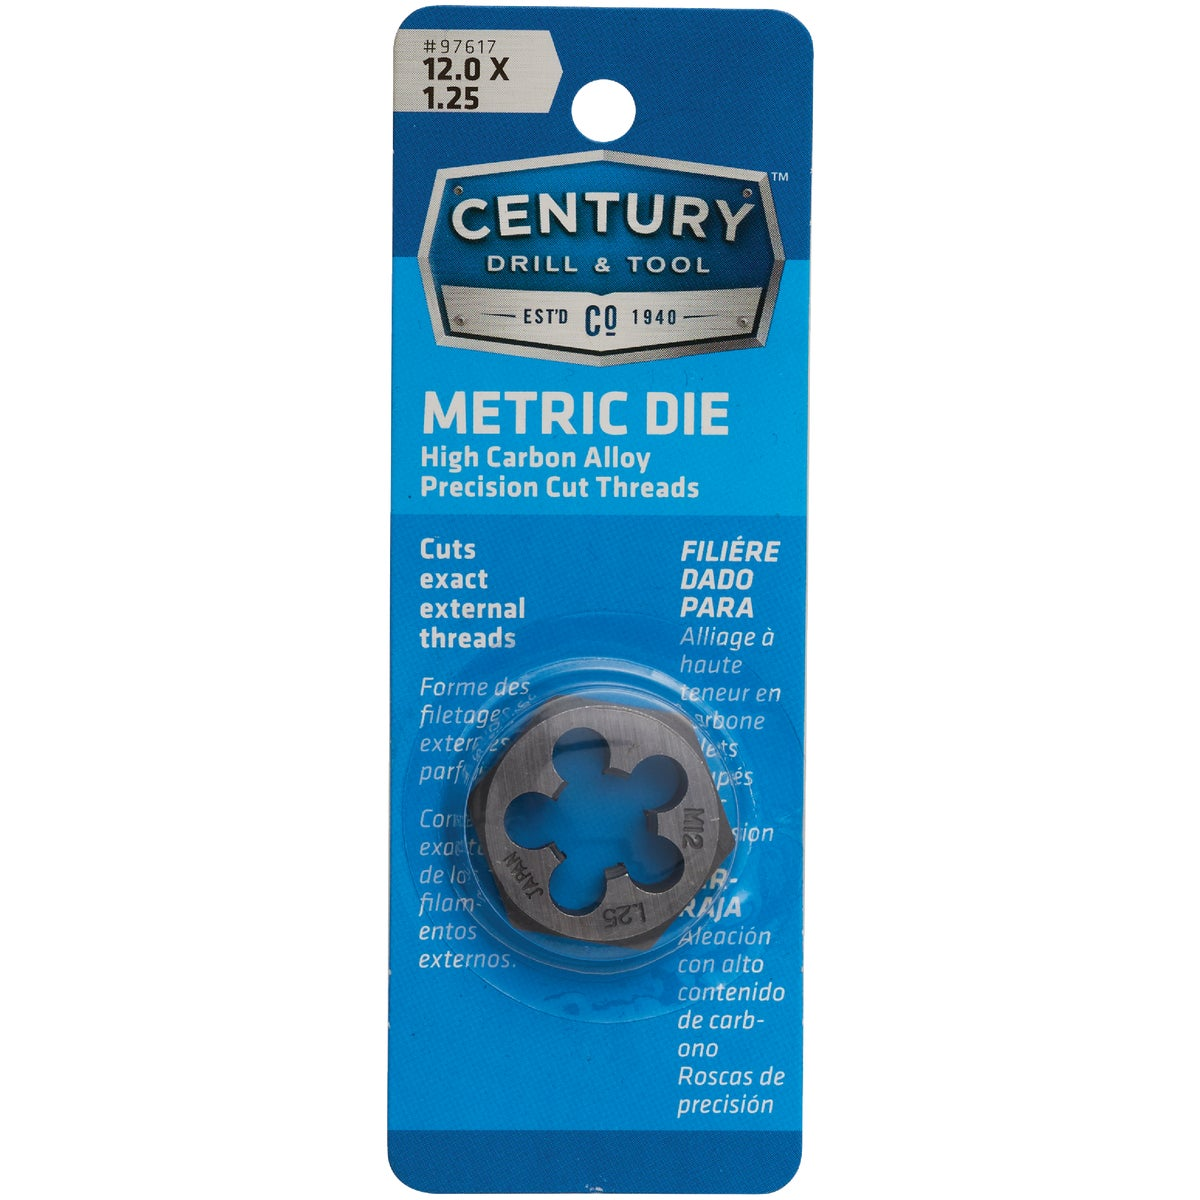 12MM-1.25 HEX DIE - 9742 by Irwin Industr Tool